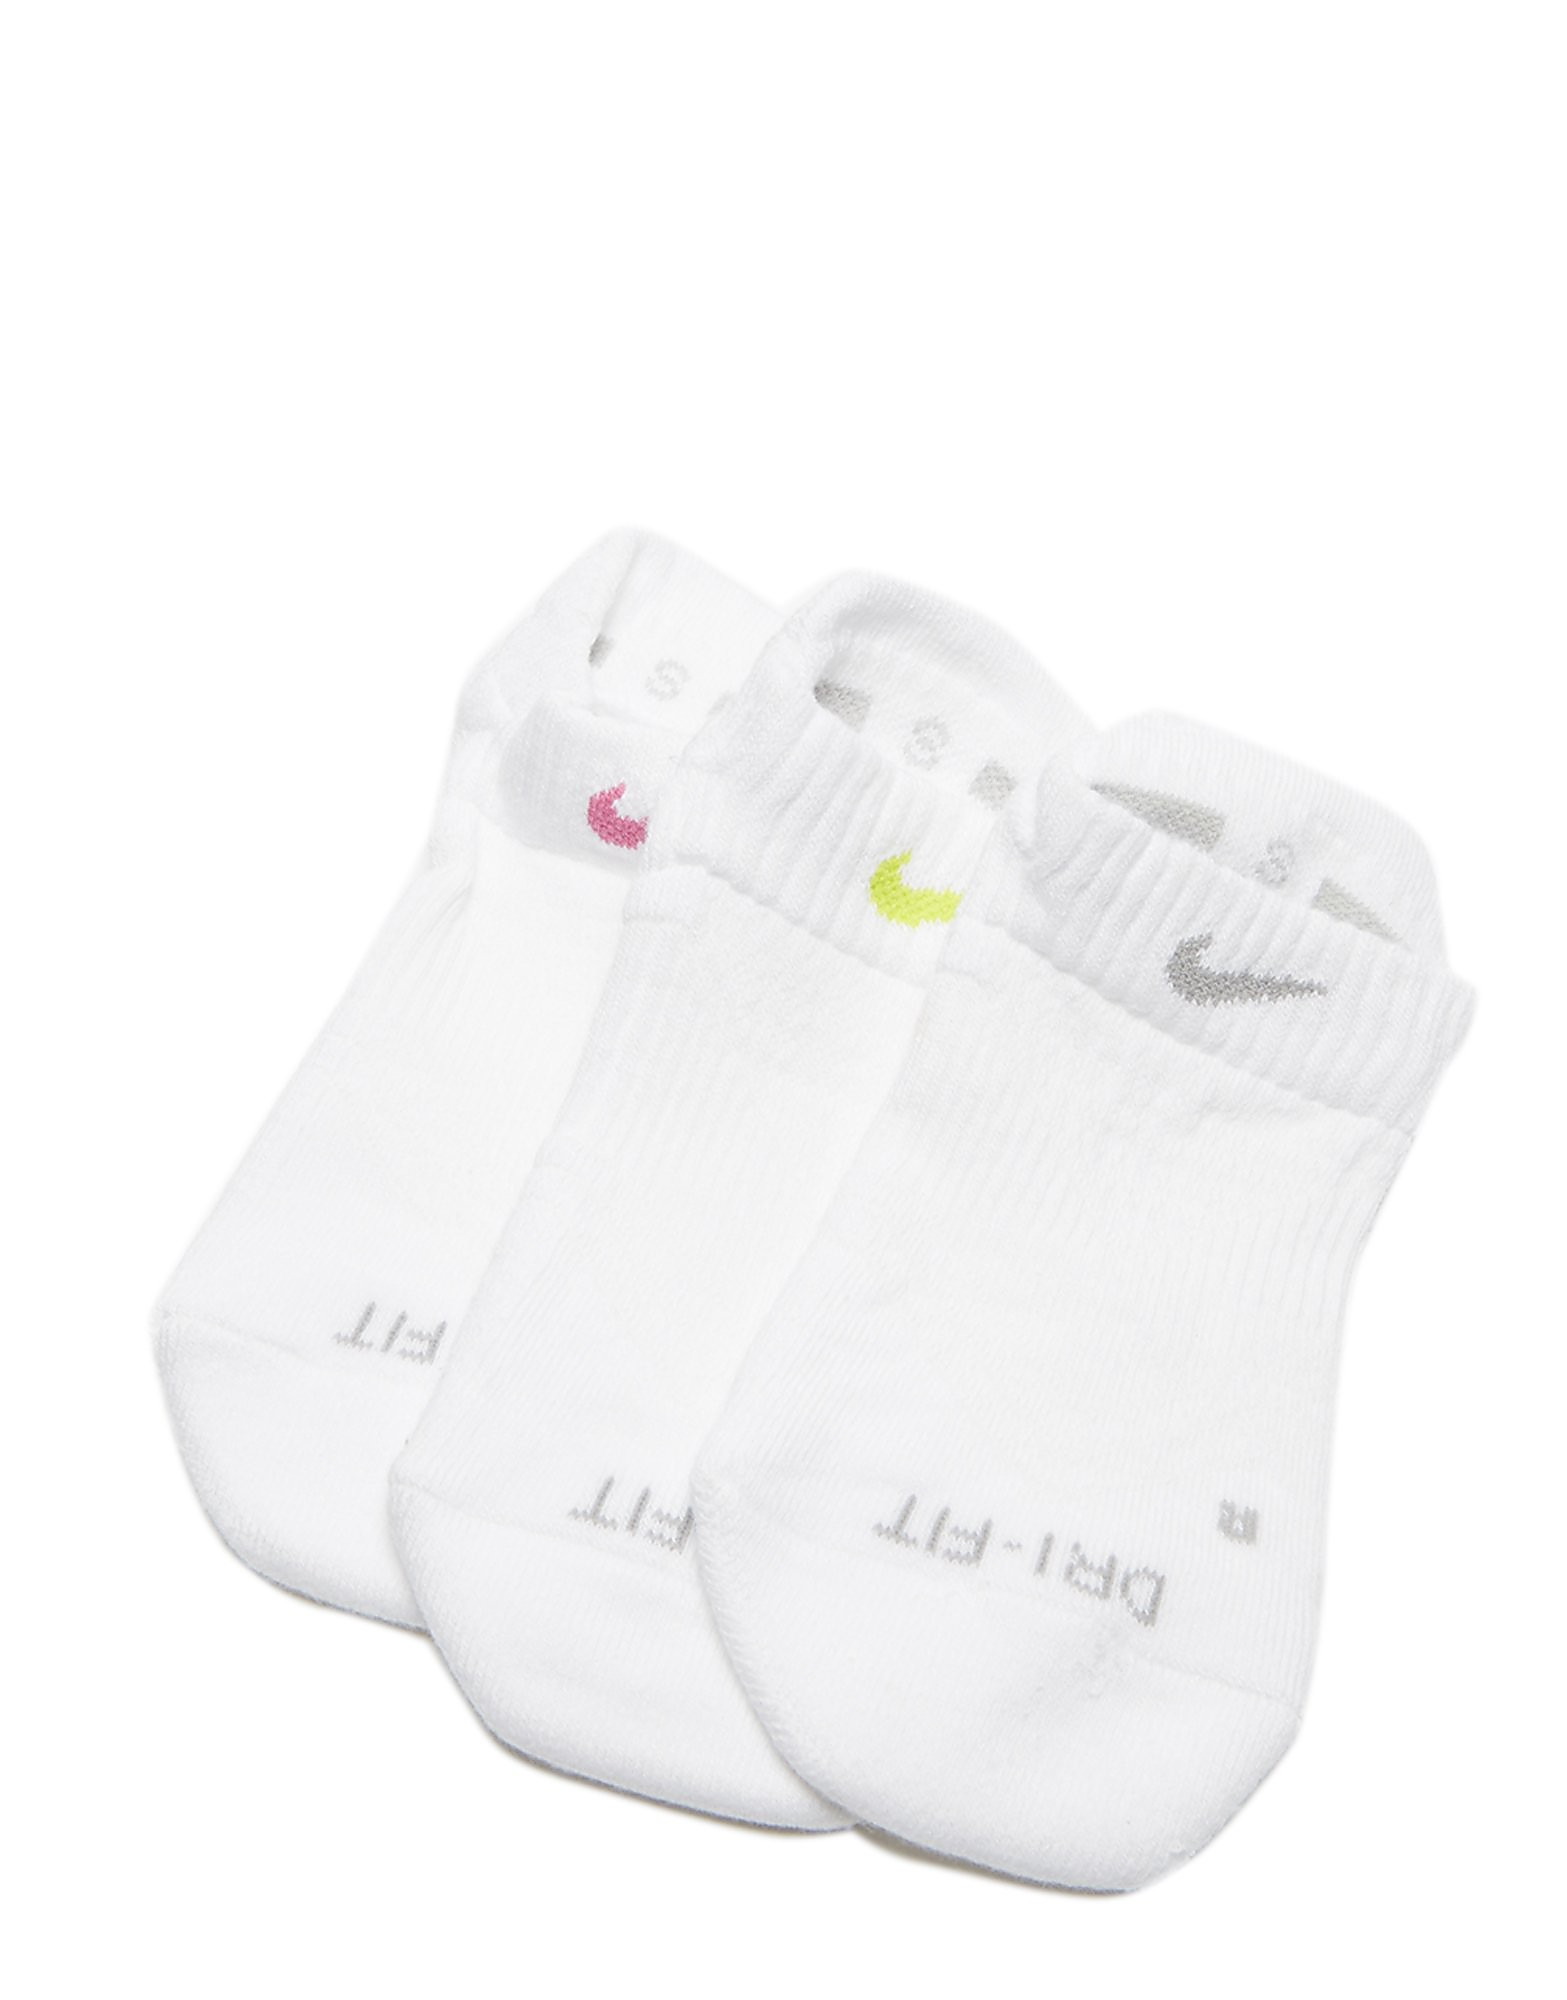 Nike 3 Pack Dri-FIT No-Show Socks